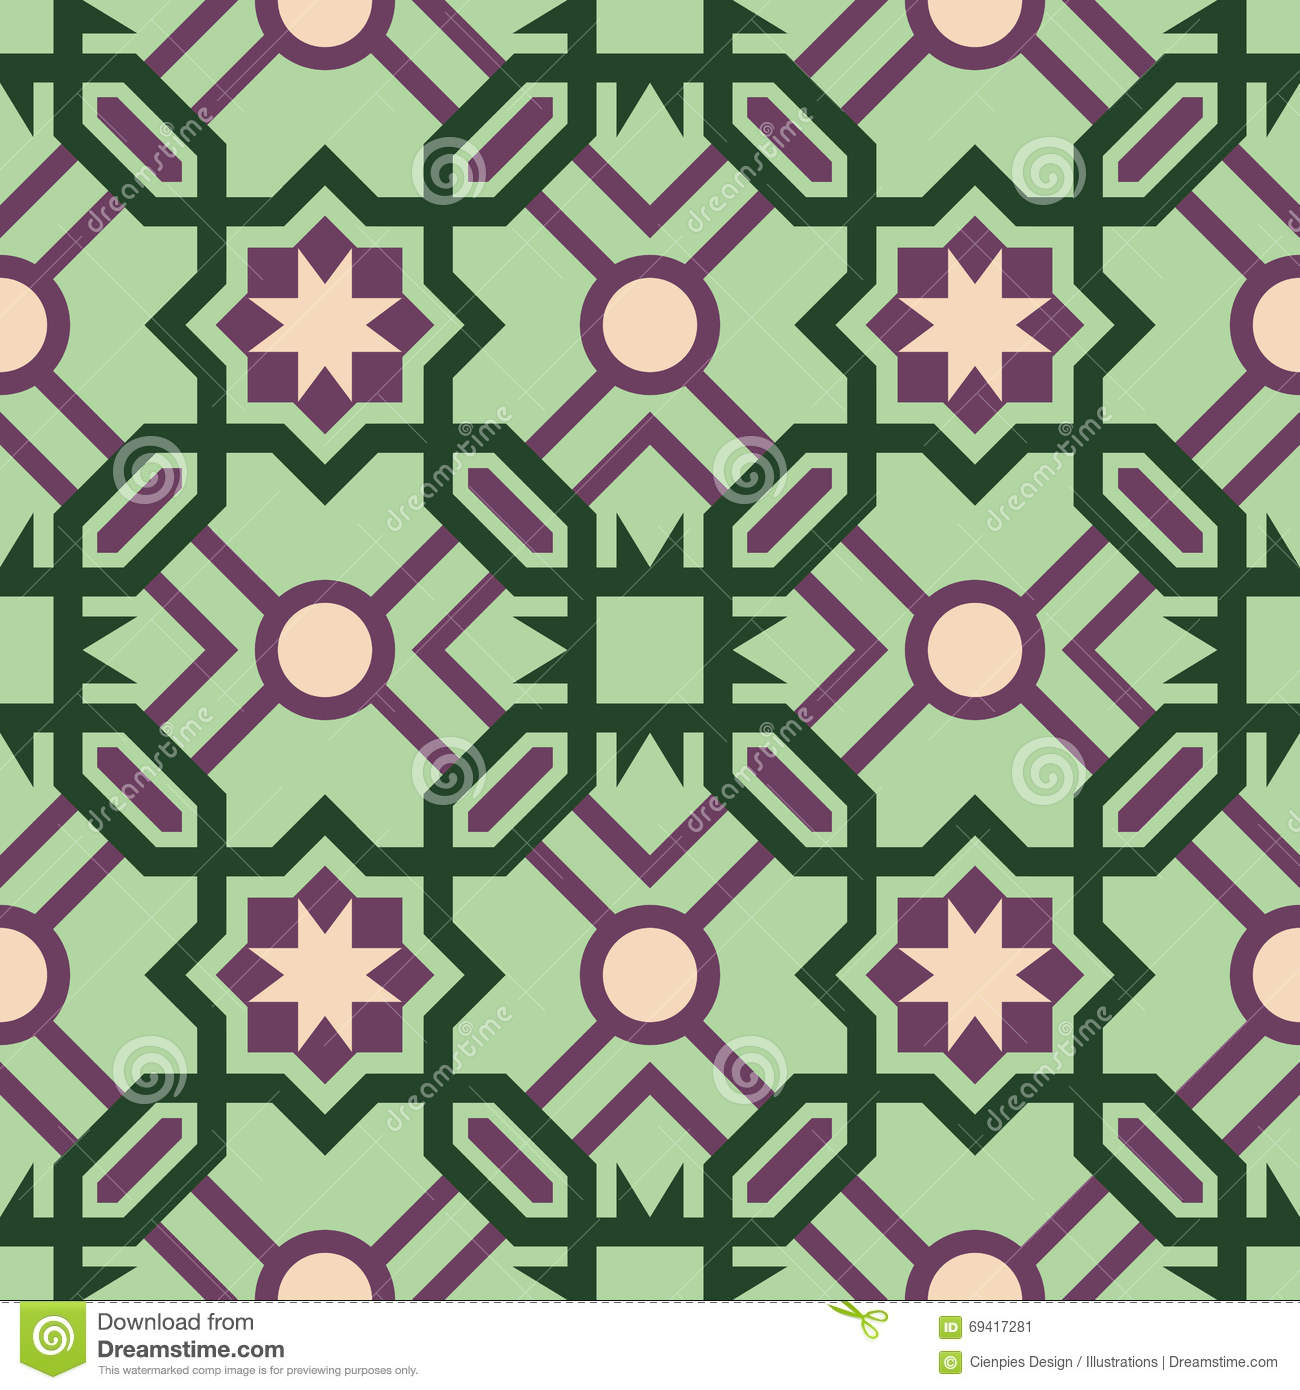 Vector of moroccan tile seamless pattern tile for design tile - Royalty Free Vector Abstract Ceramic Color Floor Geometric Green Moroccan Mosaic Pattern Seamless Tile Vector